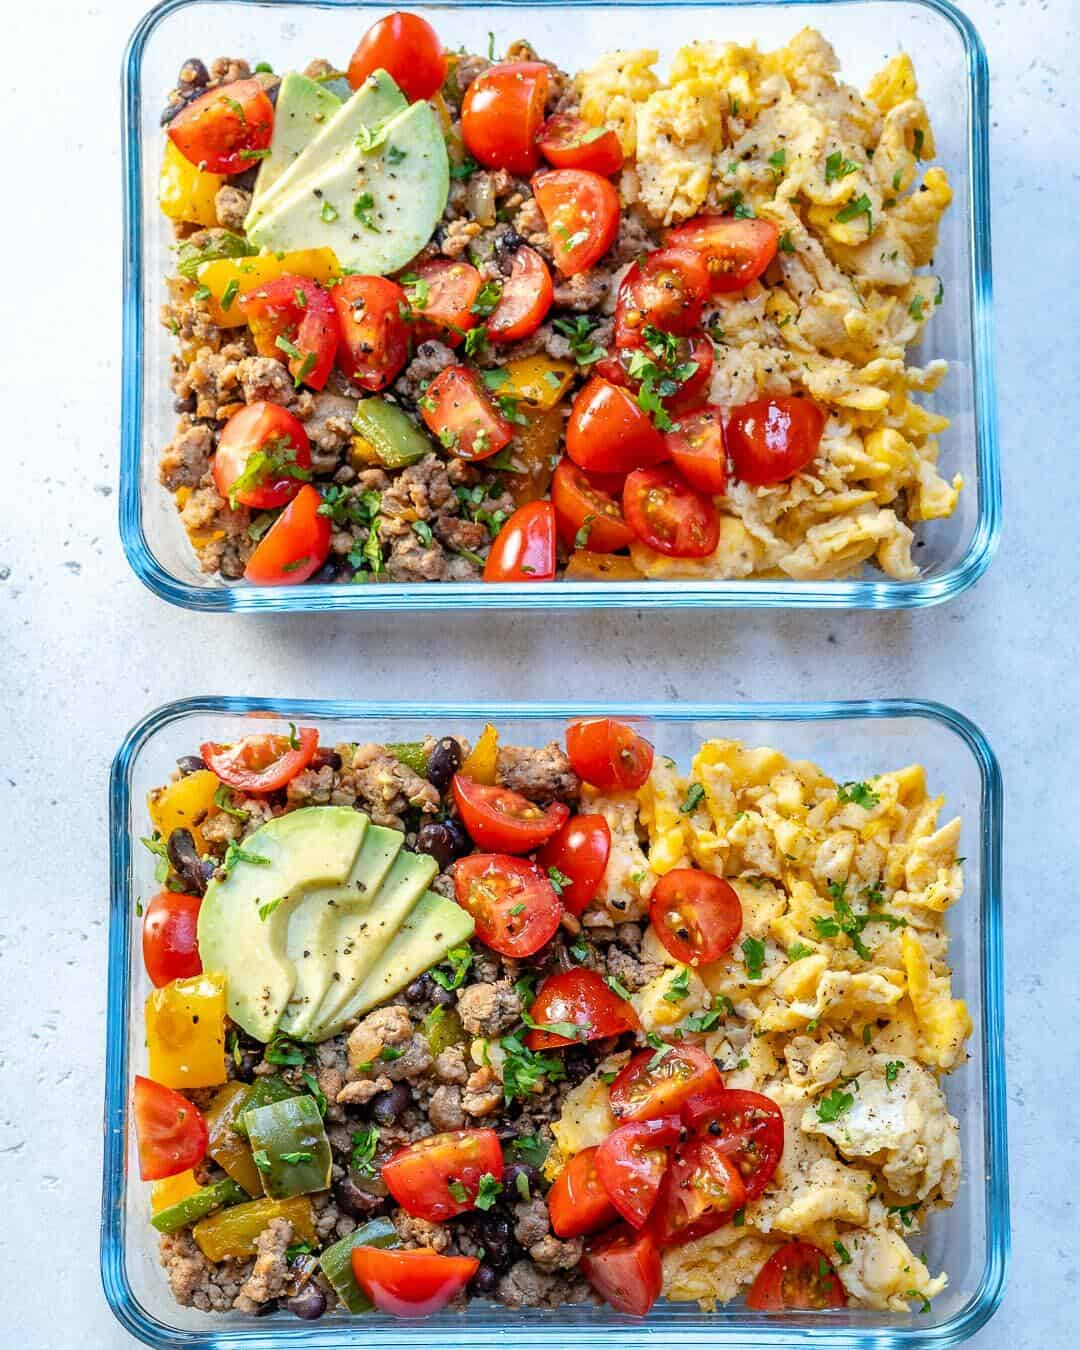 The Ultimate Guide to Meal Prepping with Easy Meal Prep Ideas and Tips + 10 Healthy Meal Prep Recipes that We Keep coming back to!